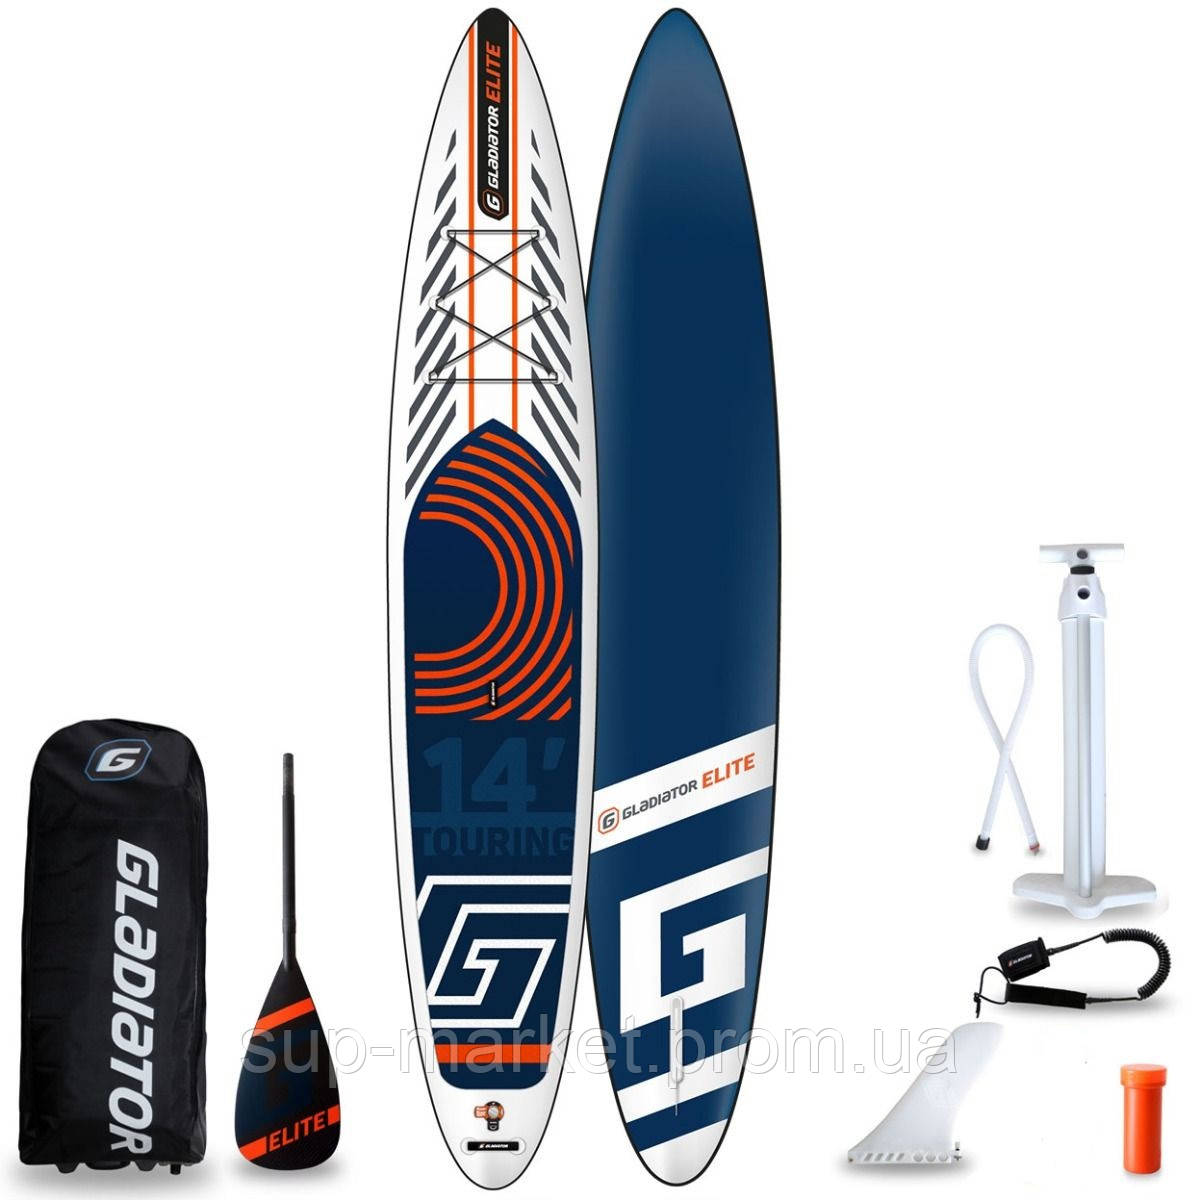 SUP доска Gladiator ELITE 14'0''T x 30'' x 6'', 26psi, 2020